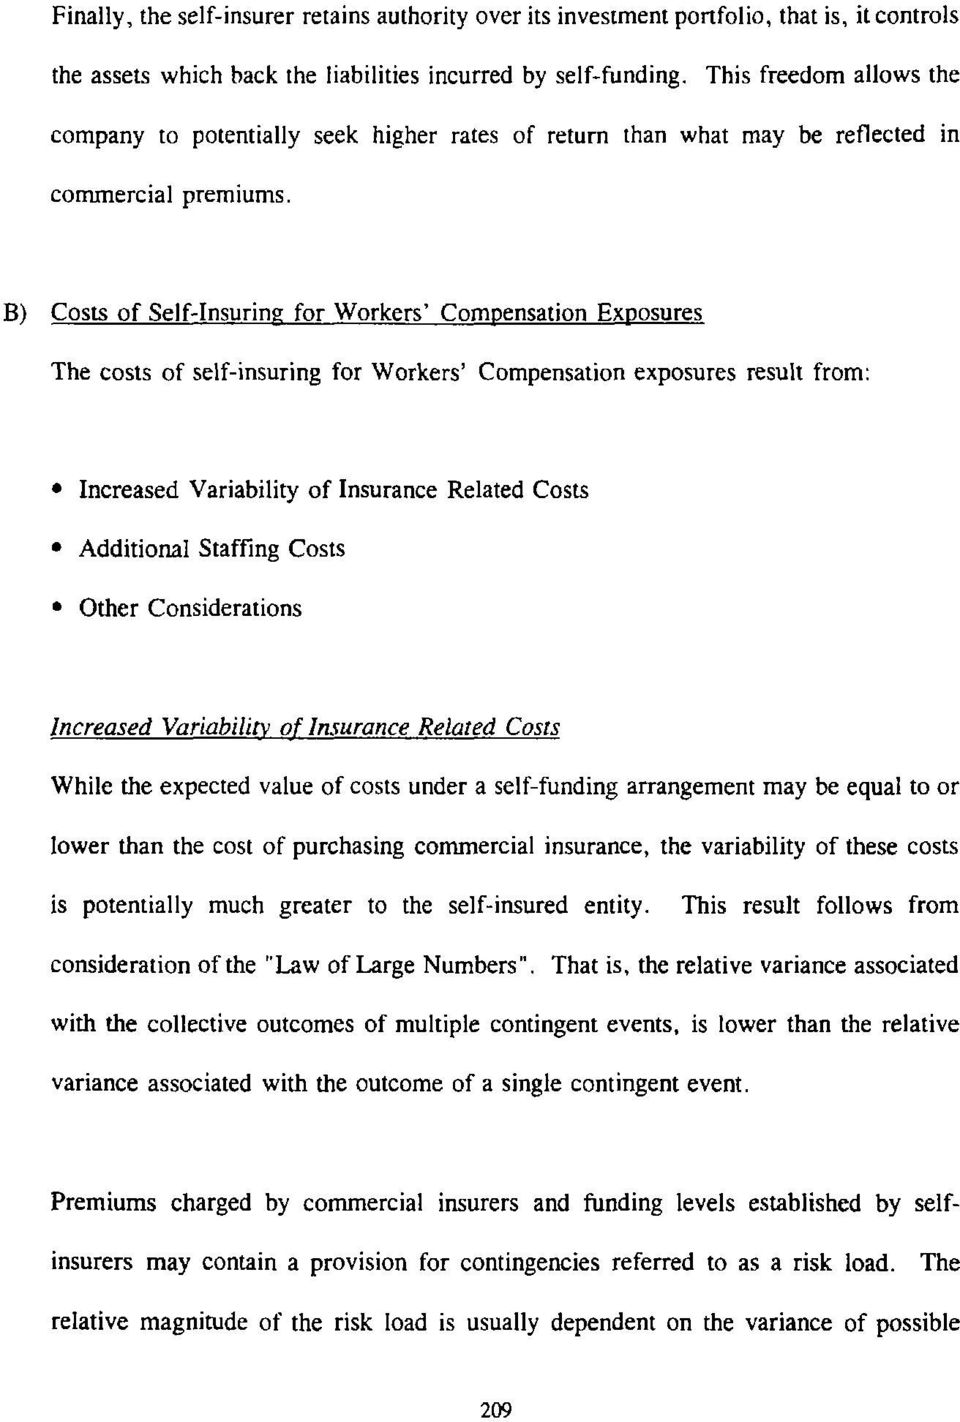 B) Costs of Sef-Insuring for Workers Comoensation Exnosures The costs of sef-insuring for Workers Compensation exposures resut from: Increased Variabiity of Insurance Reated Costs Additiona Staffing